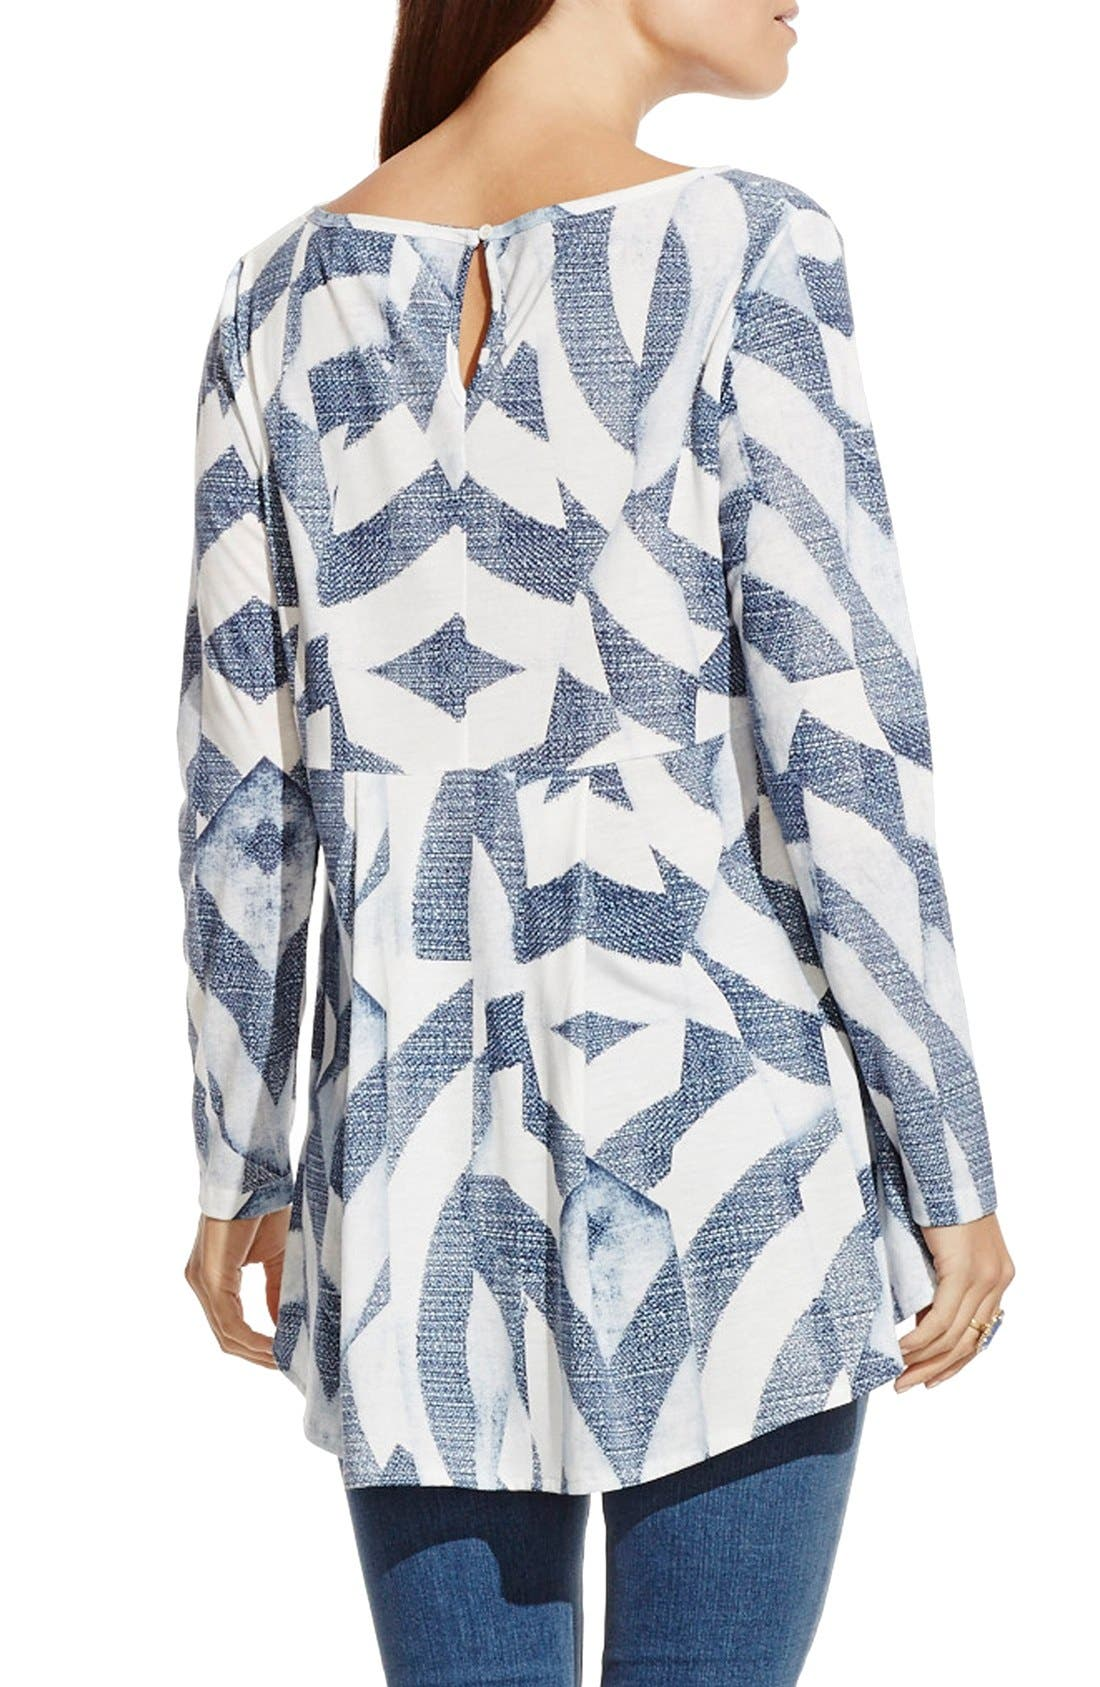 Alternate Image 3  - Two by Vince Camuto 'Broken Maze' Print High/Low V-Neck Tunic